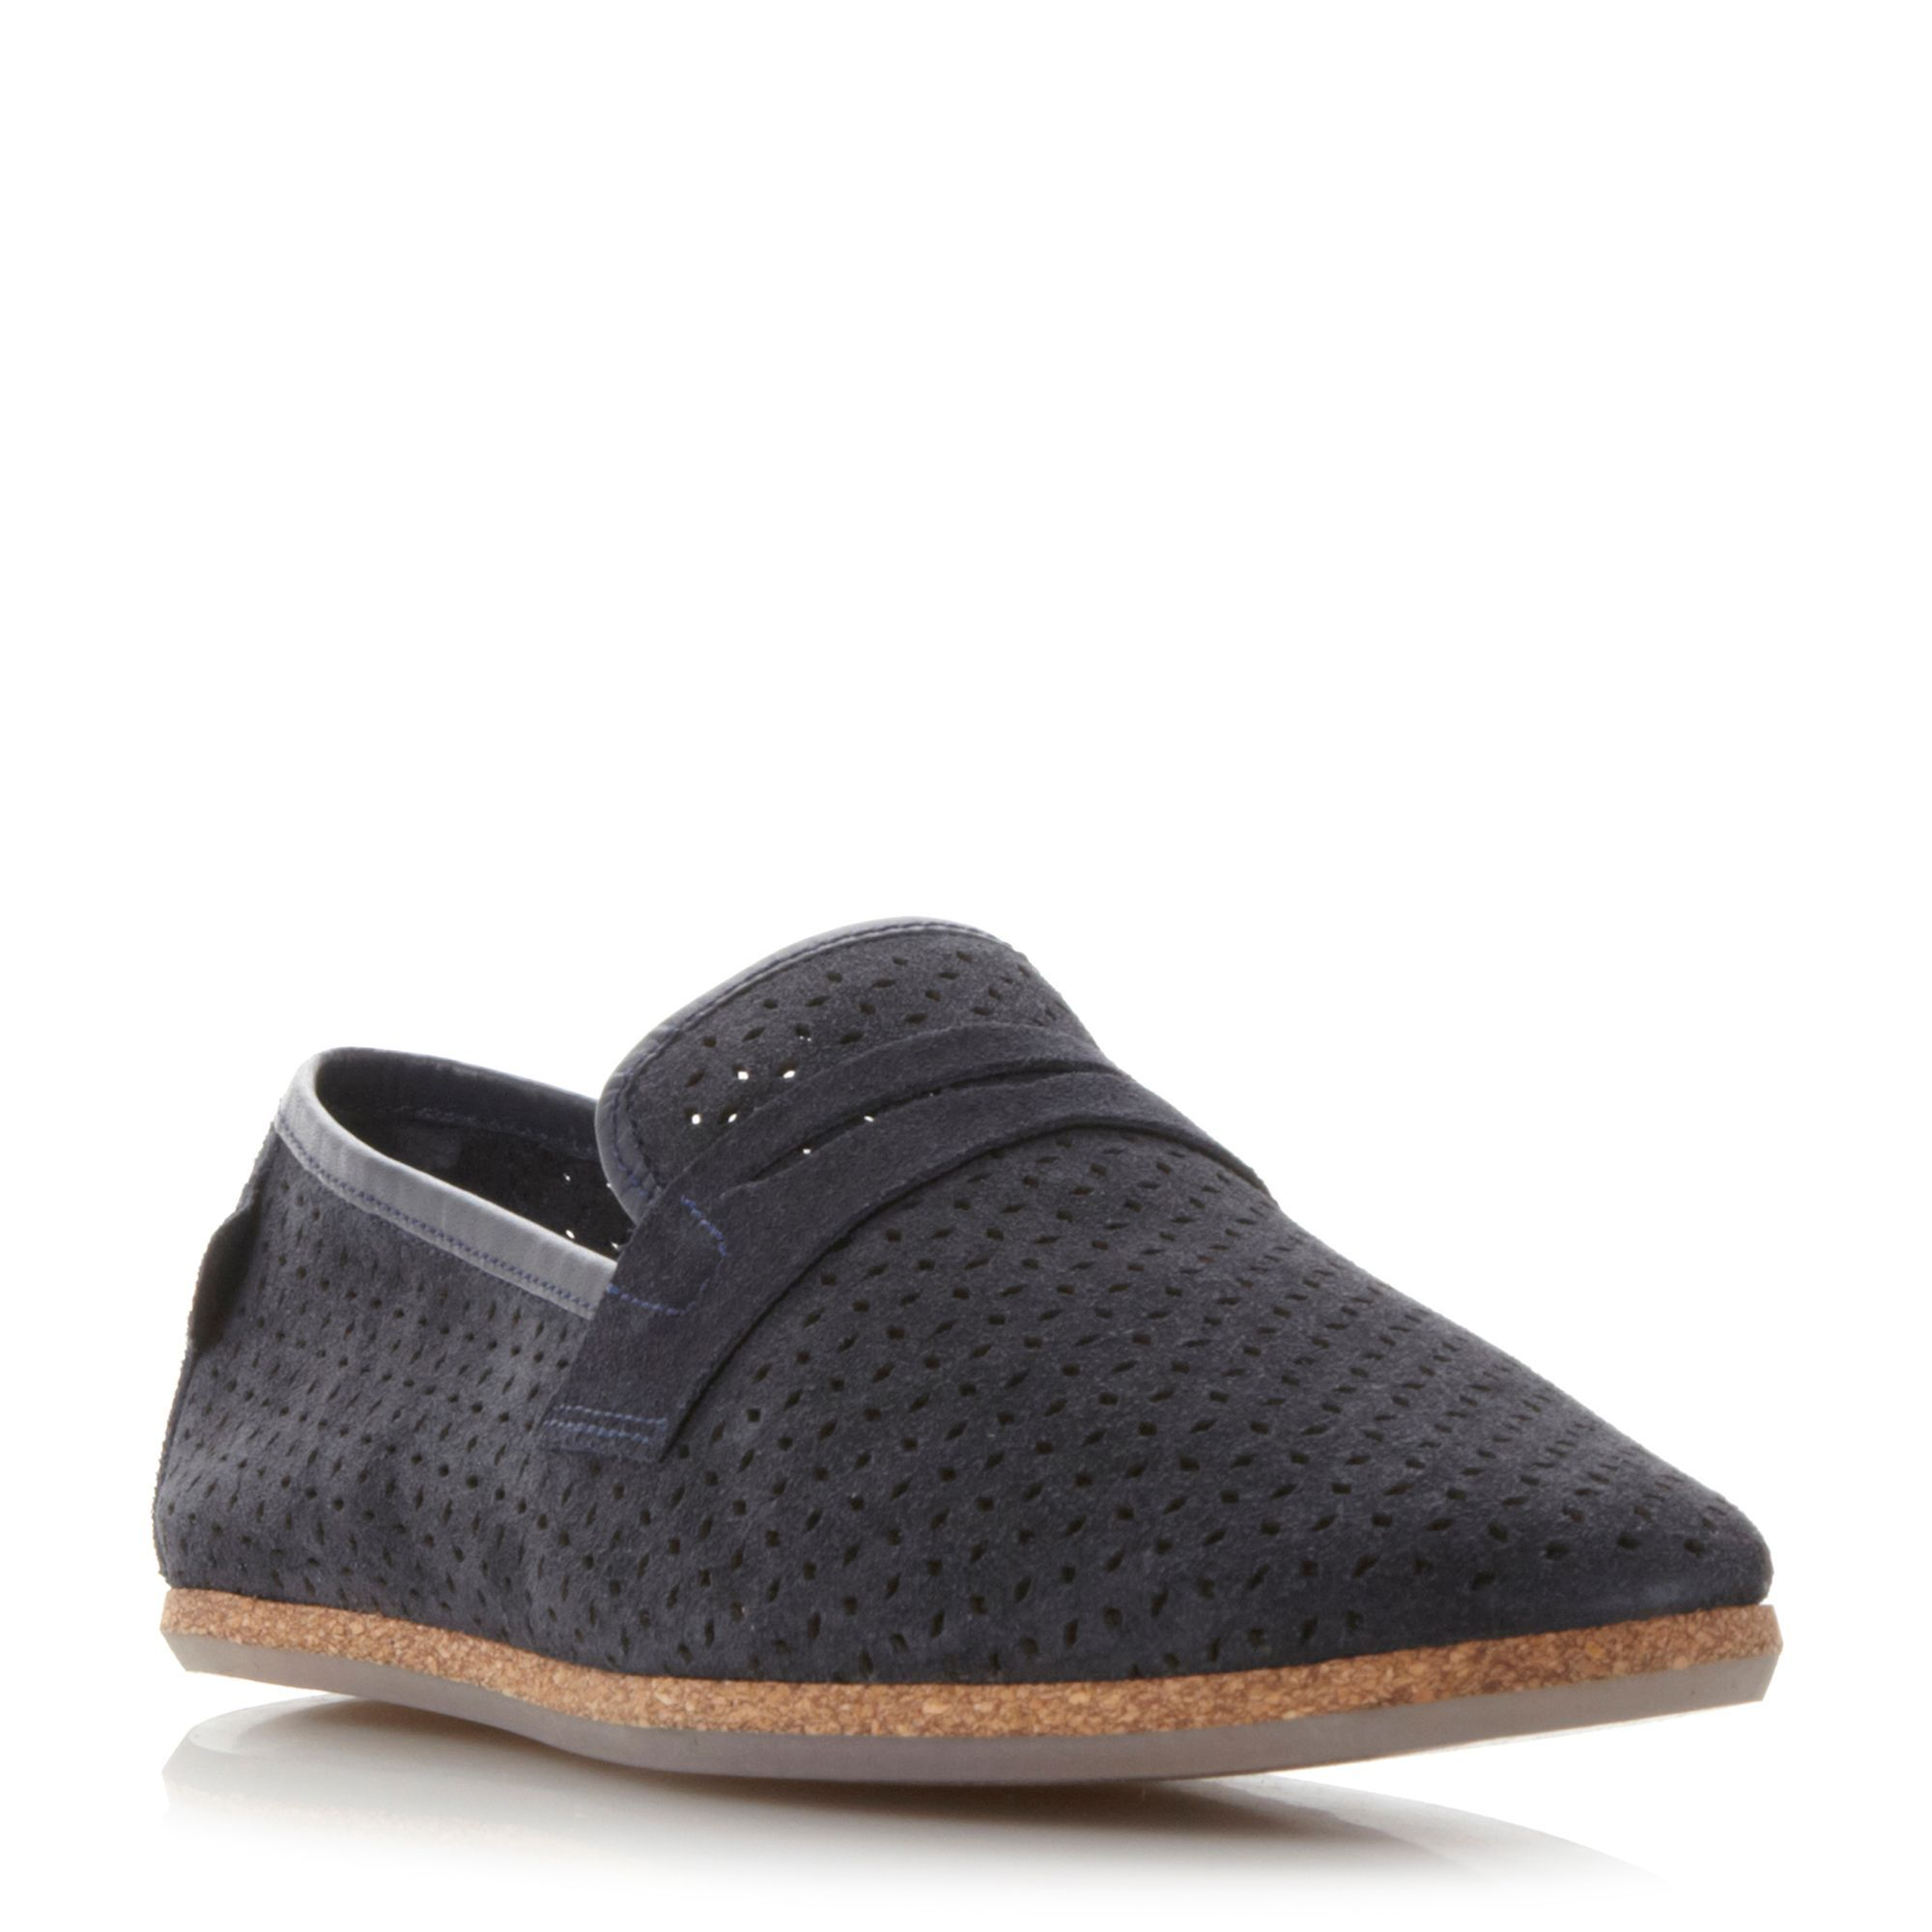 H by Hudson Platt perf suede loafers, Navy